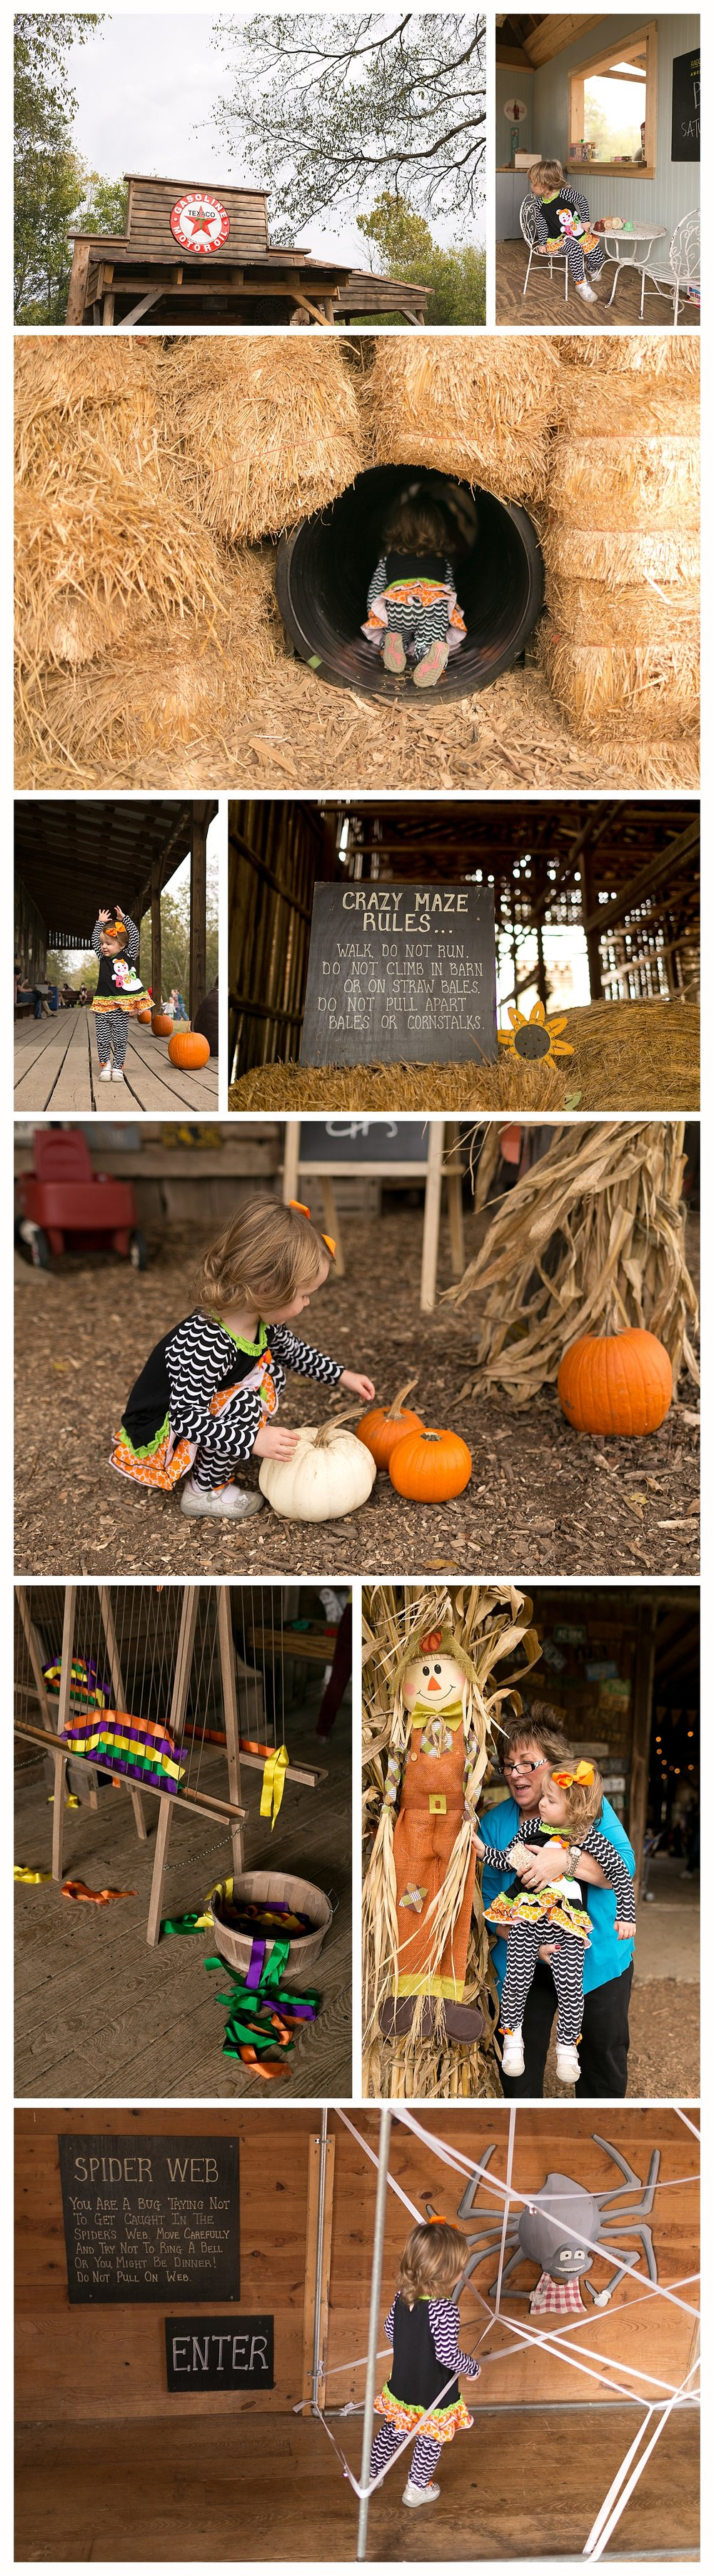 children's activities at Gentry's Farm in Franklin, TN